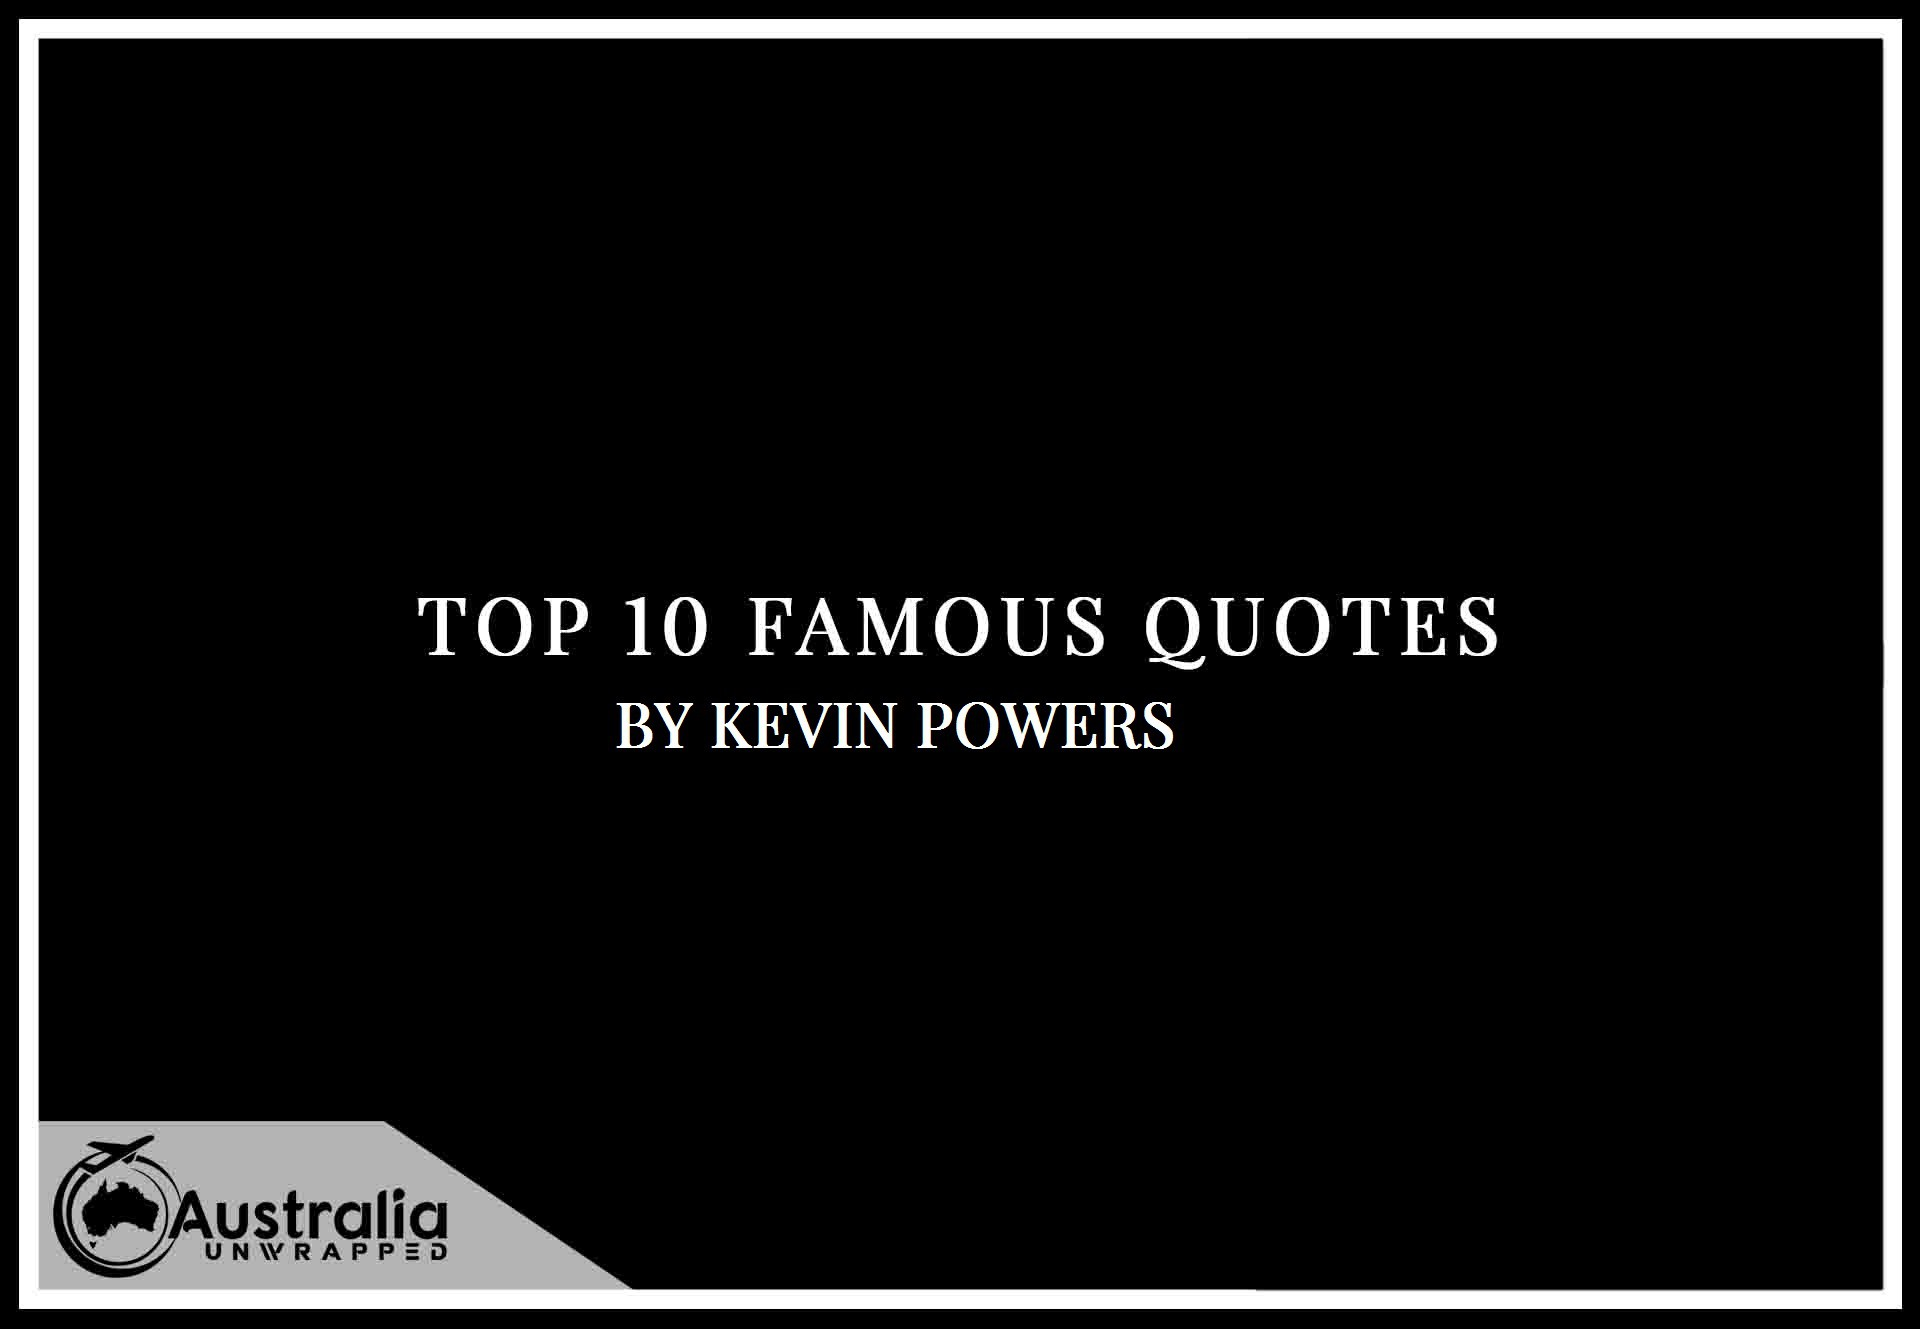 Kevin Powers's Top 10 Popular and Famous Quotes